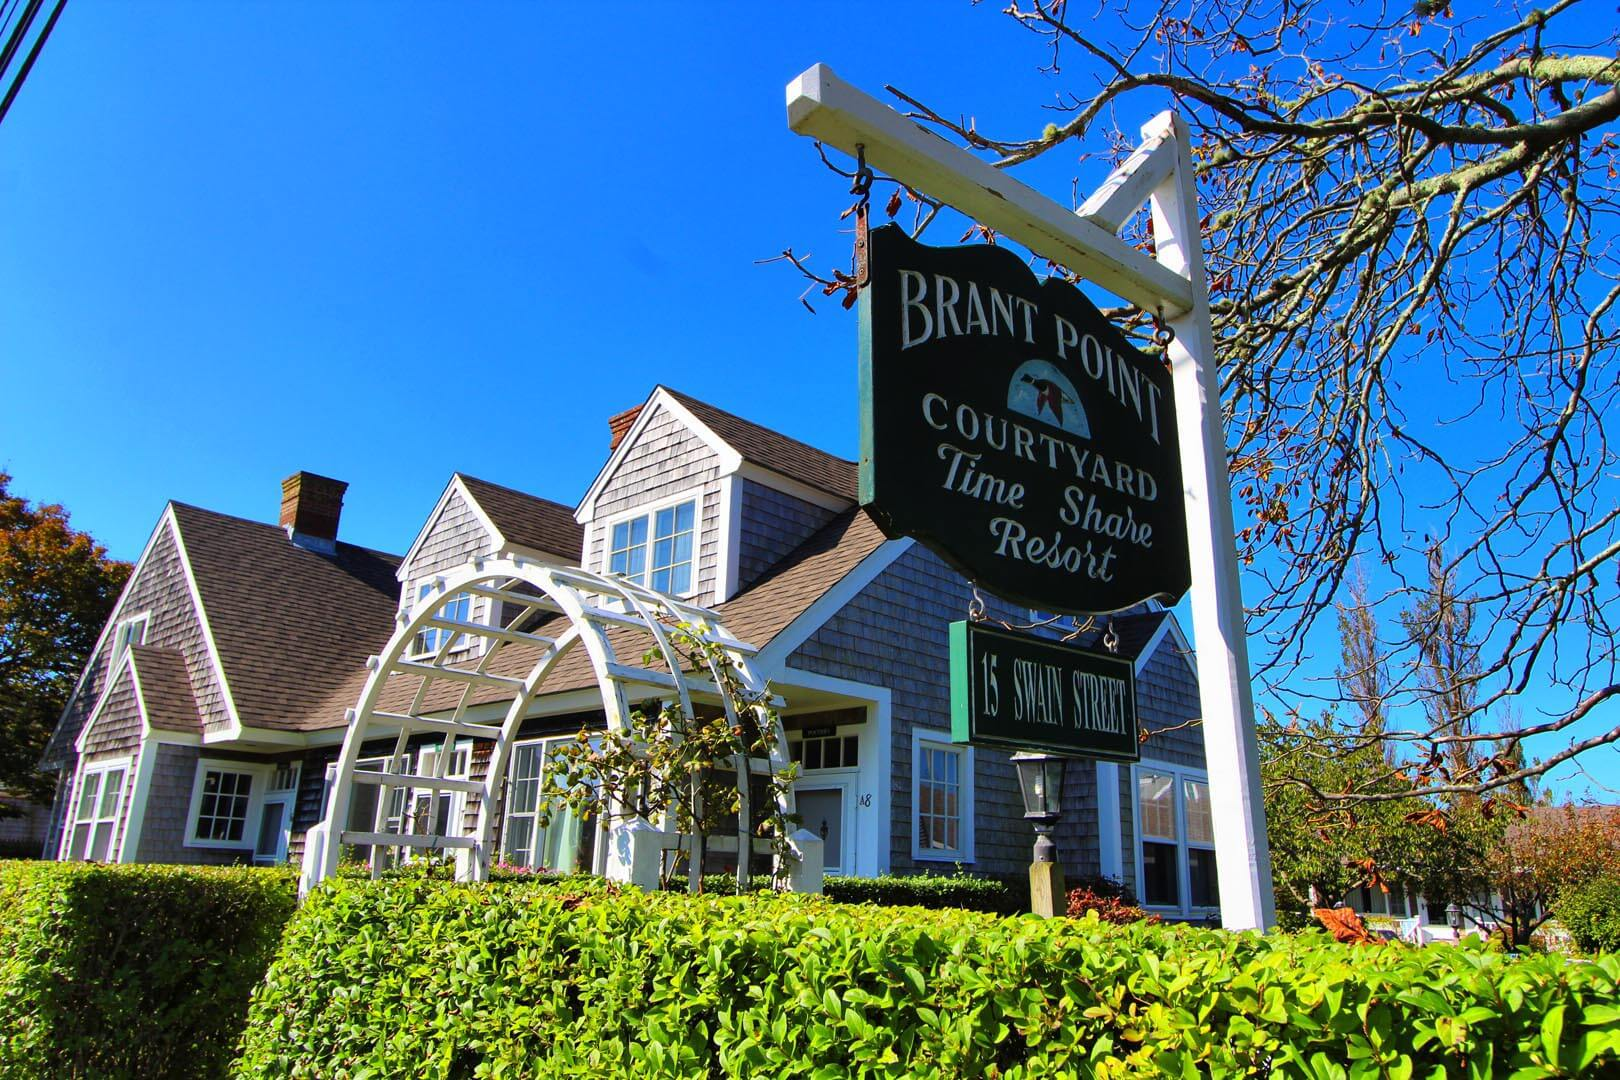 Brant Point Courtyard Signage